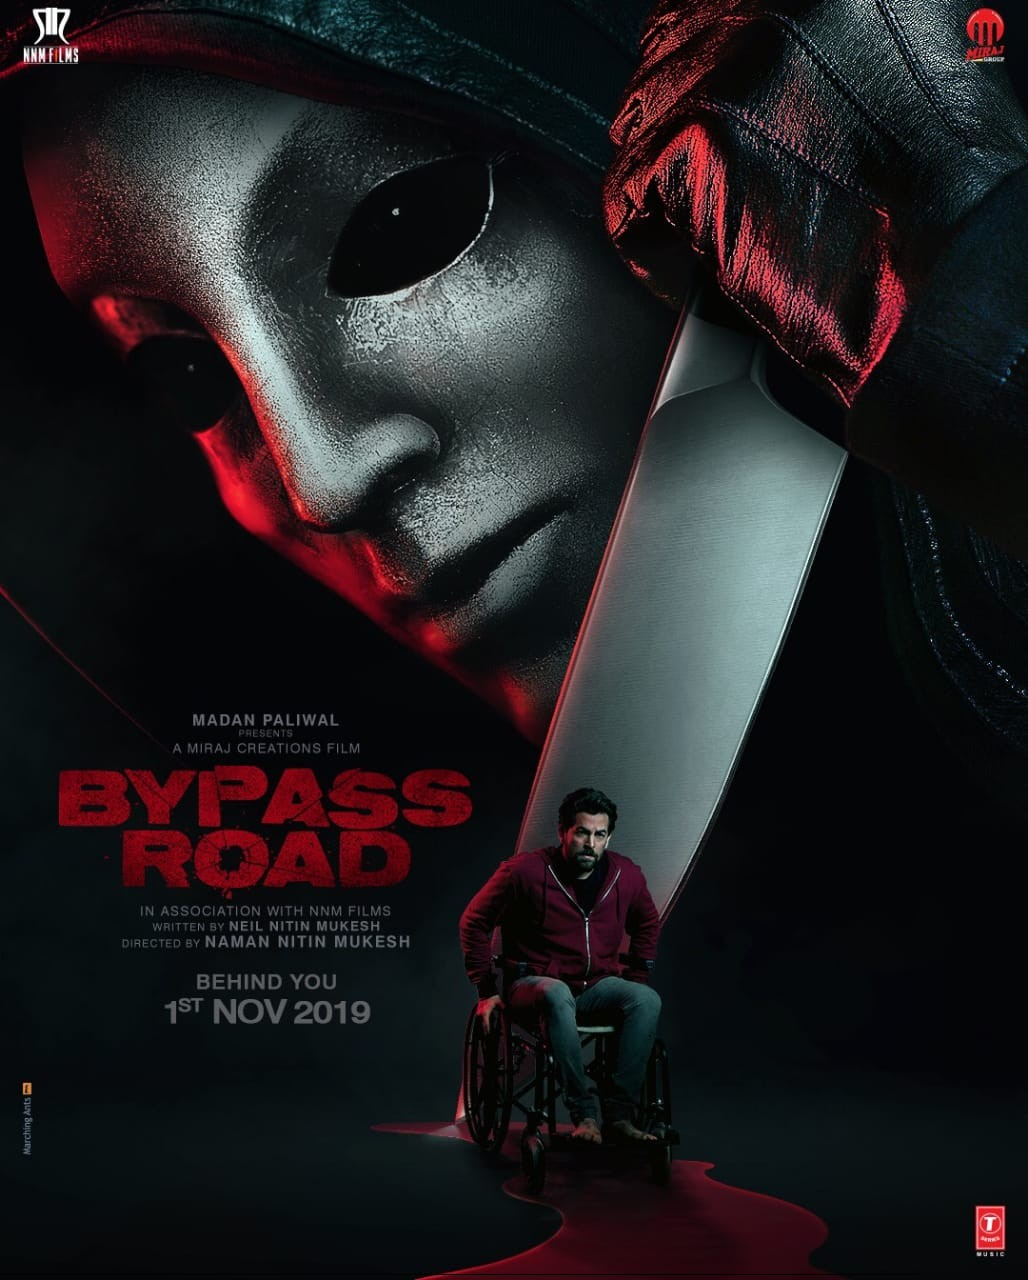 Bypass Road (2019) Hindi 480p PreDVDRip x264 AAC 400MB Download & Watch Online